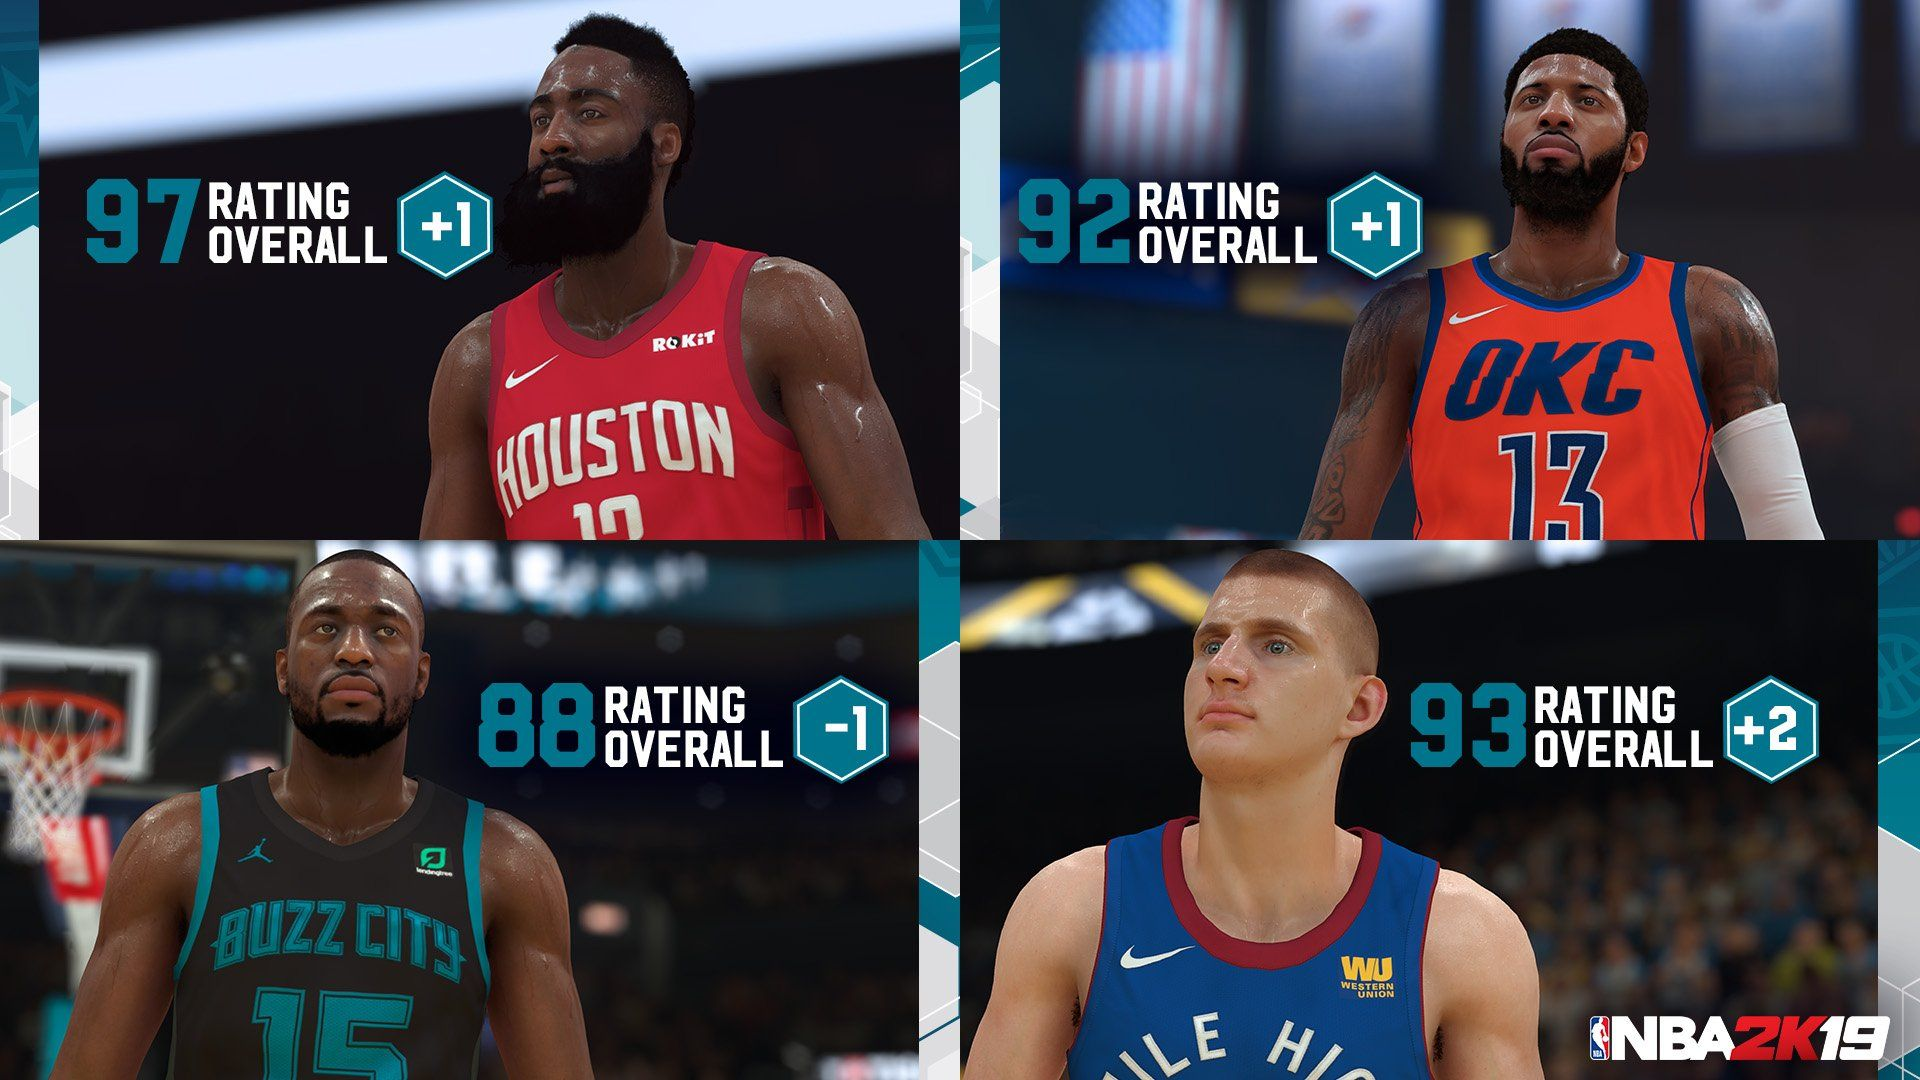 NBA 2K19' All-Star Roster Update Live - Best & Worst Player